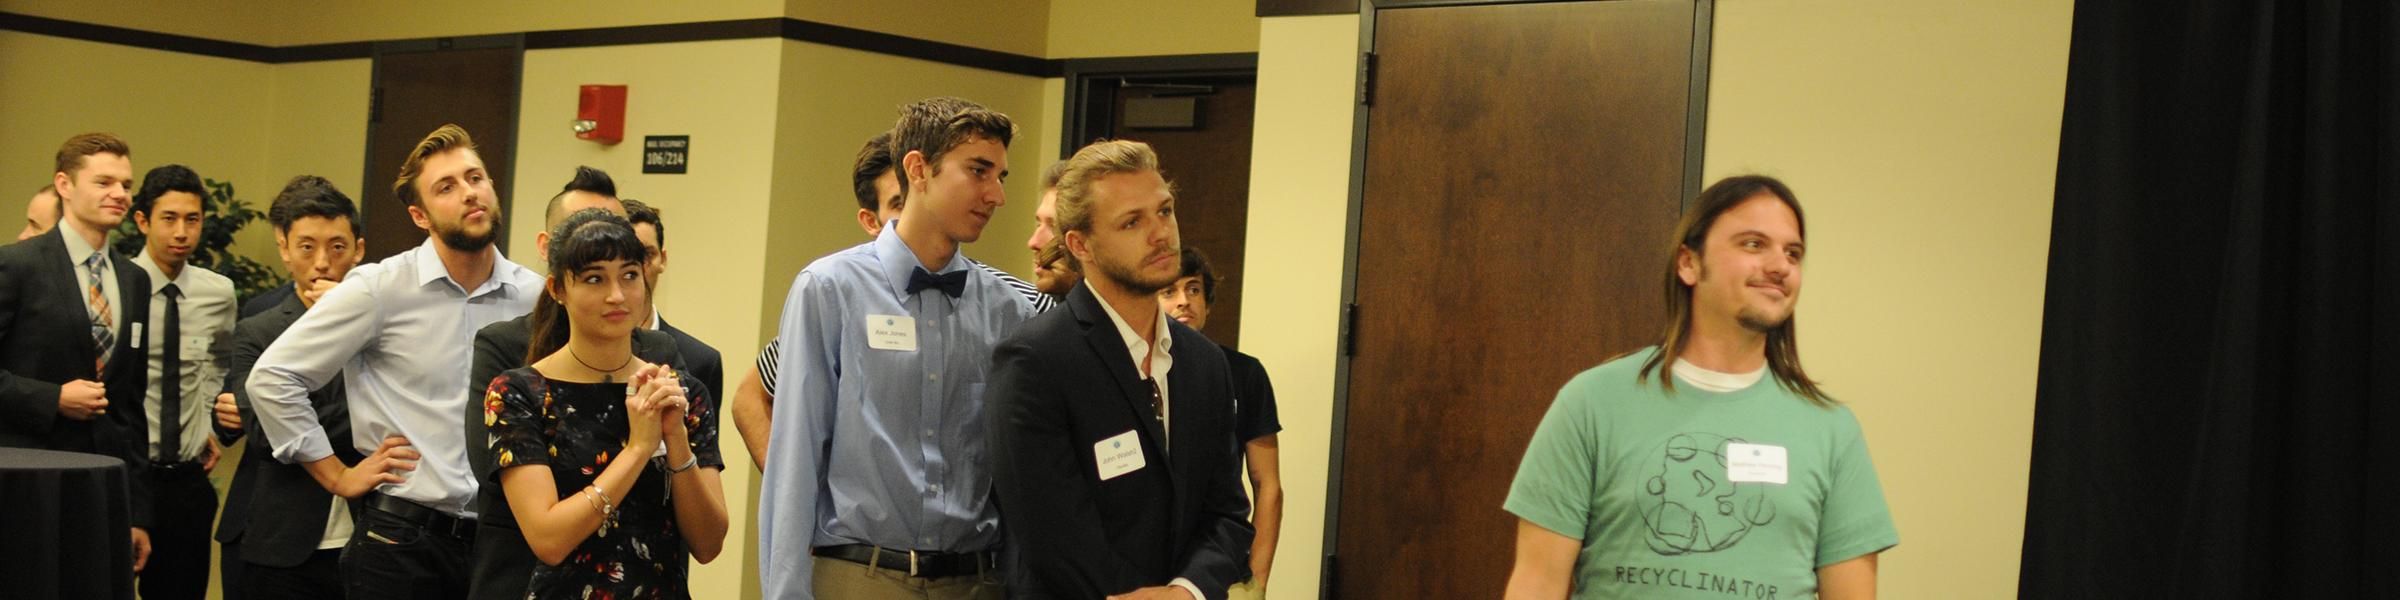 Students waiting in line to pitch